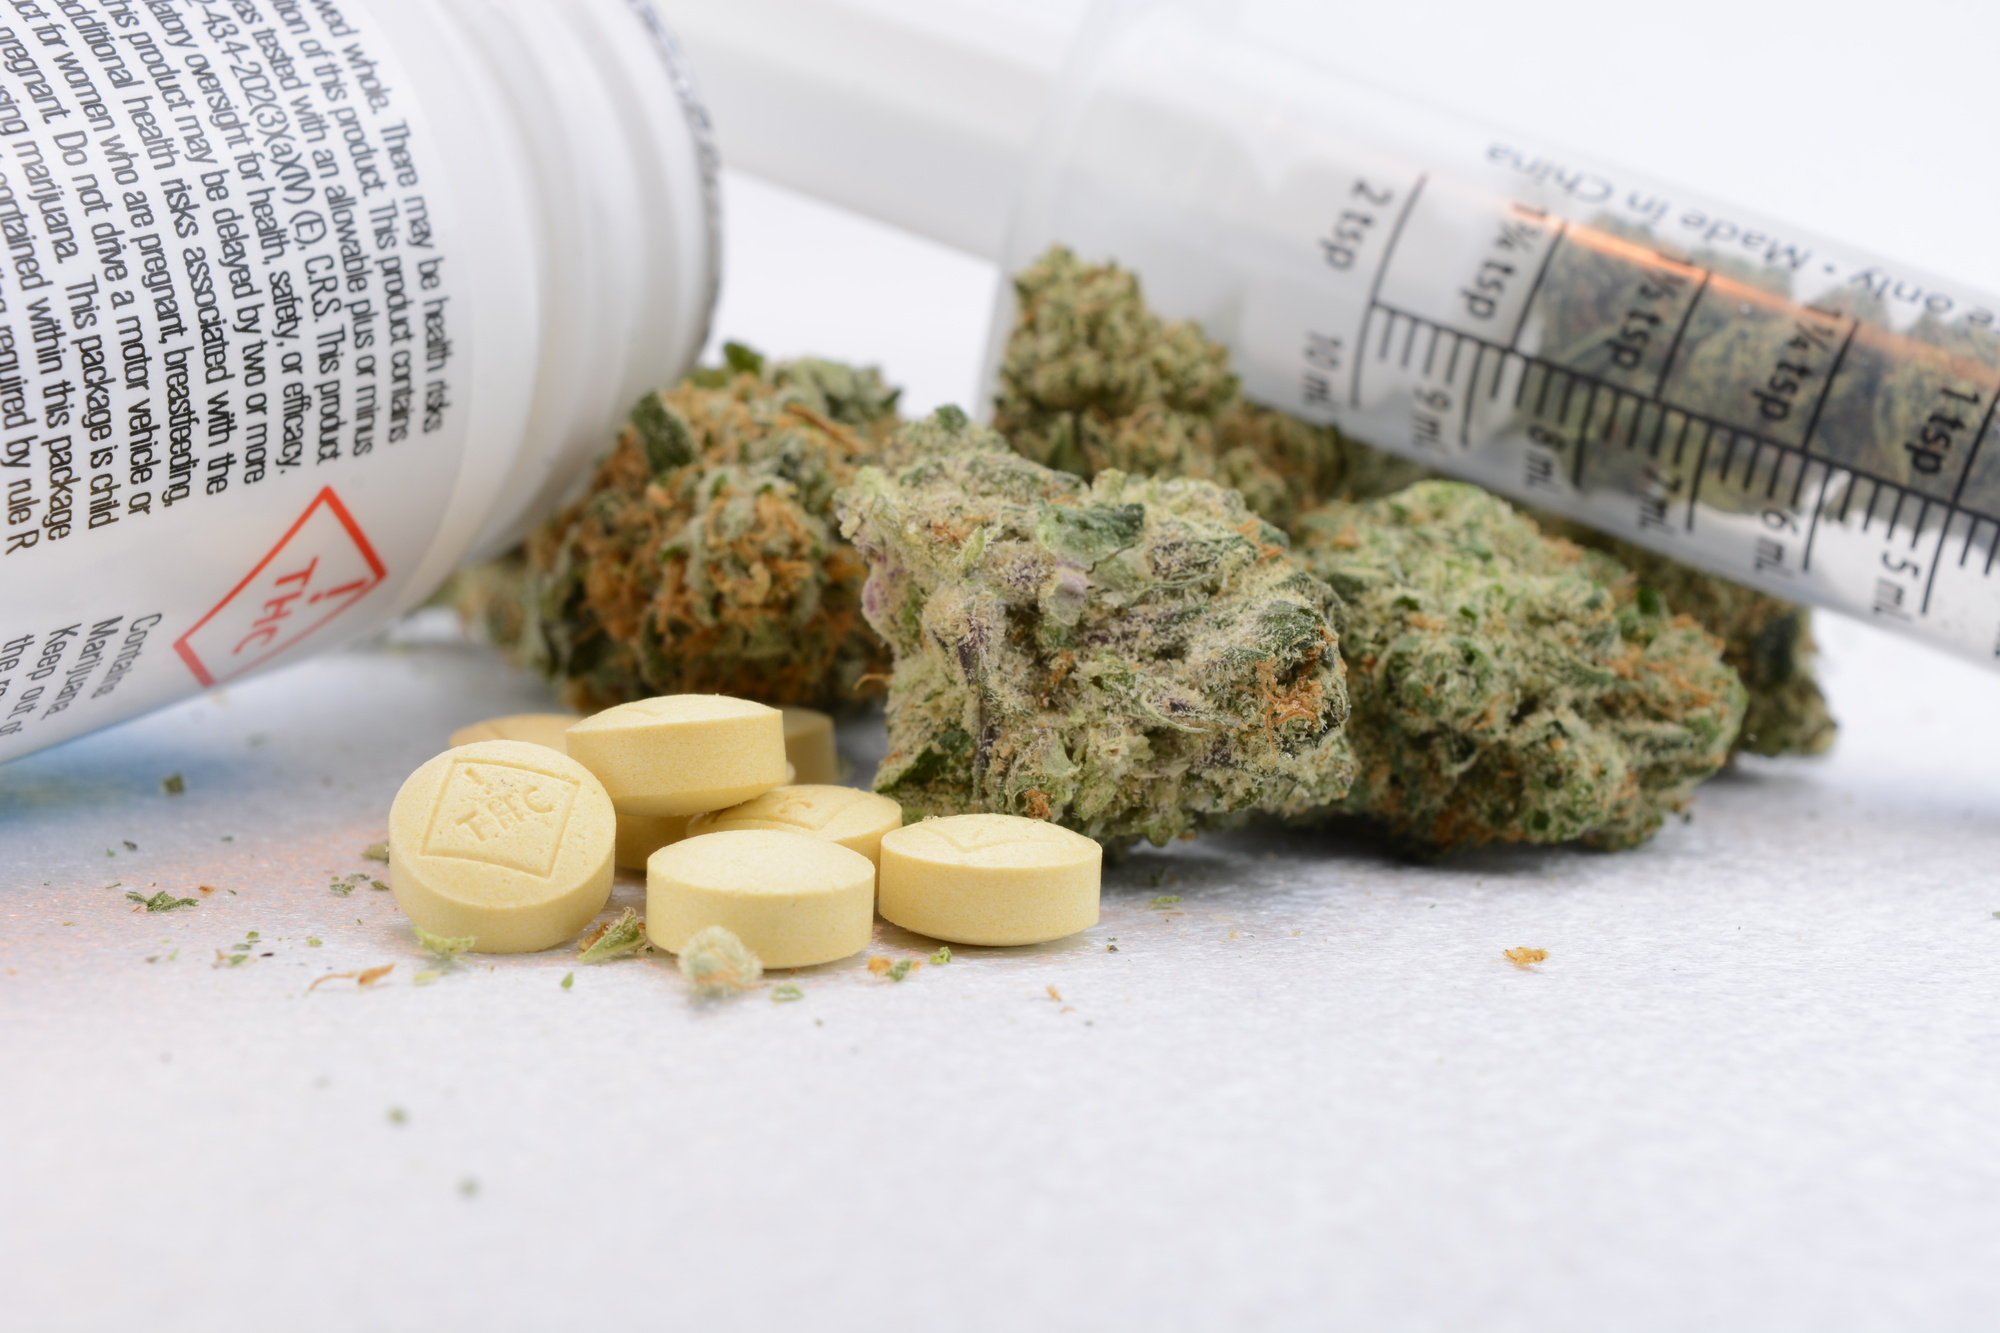 What You Should Look for in the Best Cannabis Dispensary